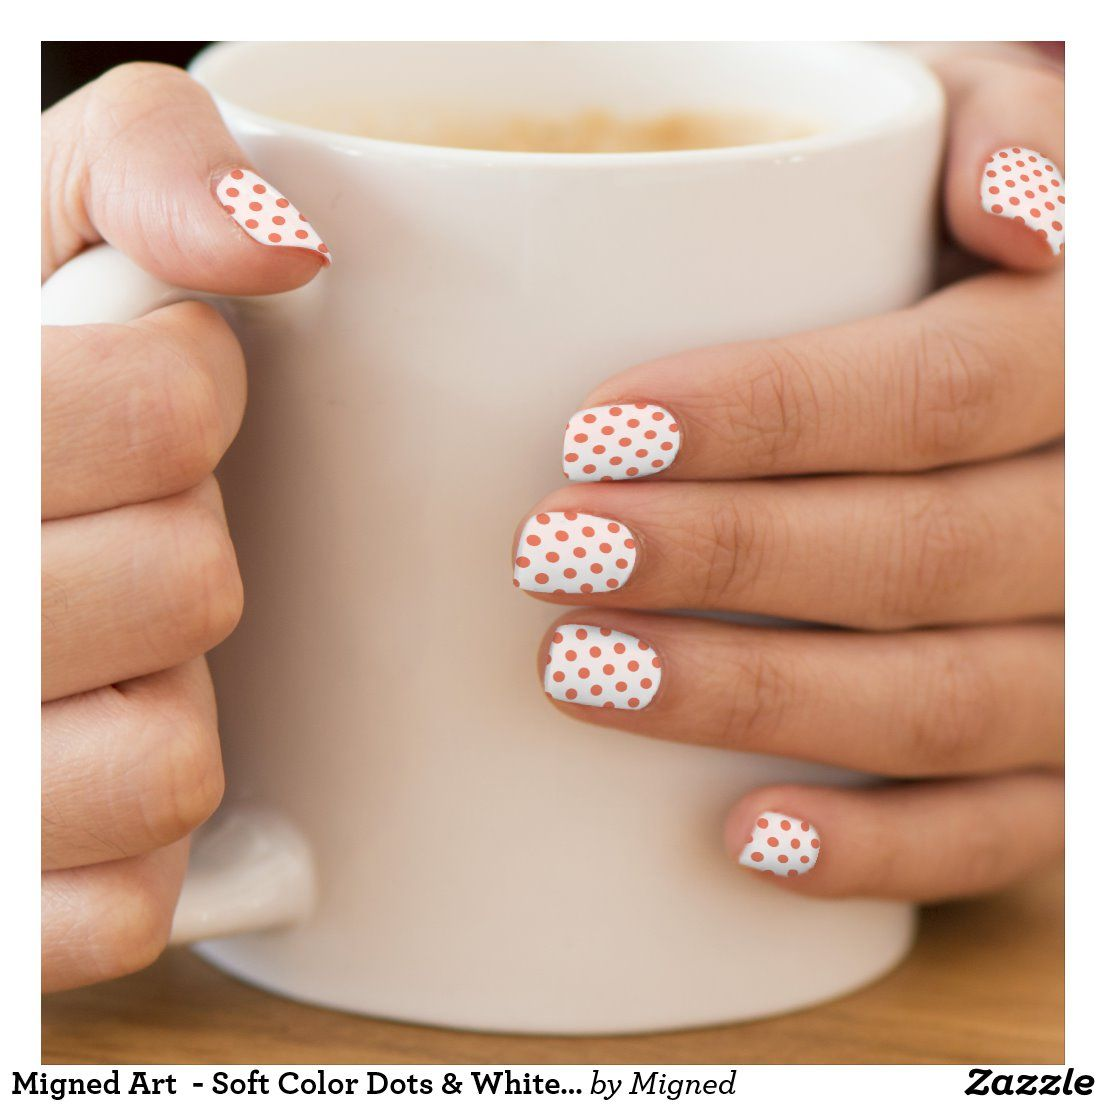 Migned Art  - Soft Color Dots & White - Minx Nail Art | Zazzle.com